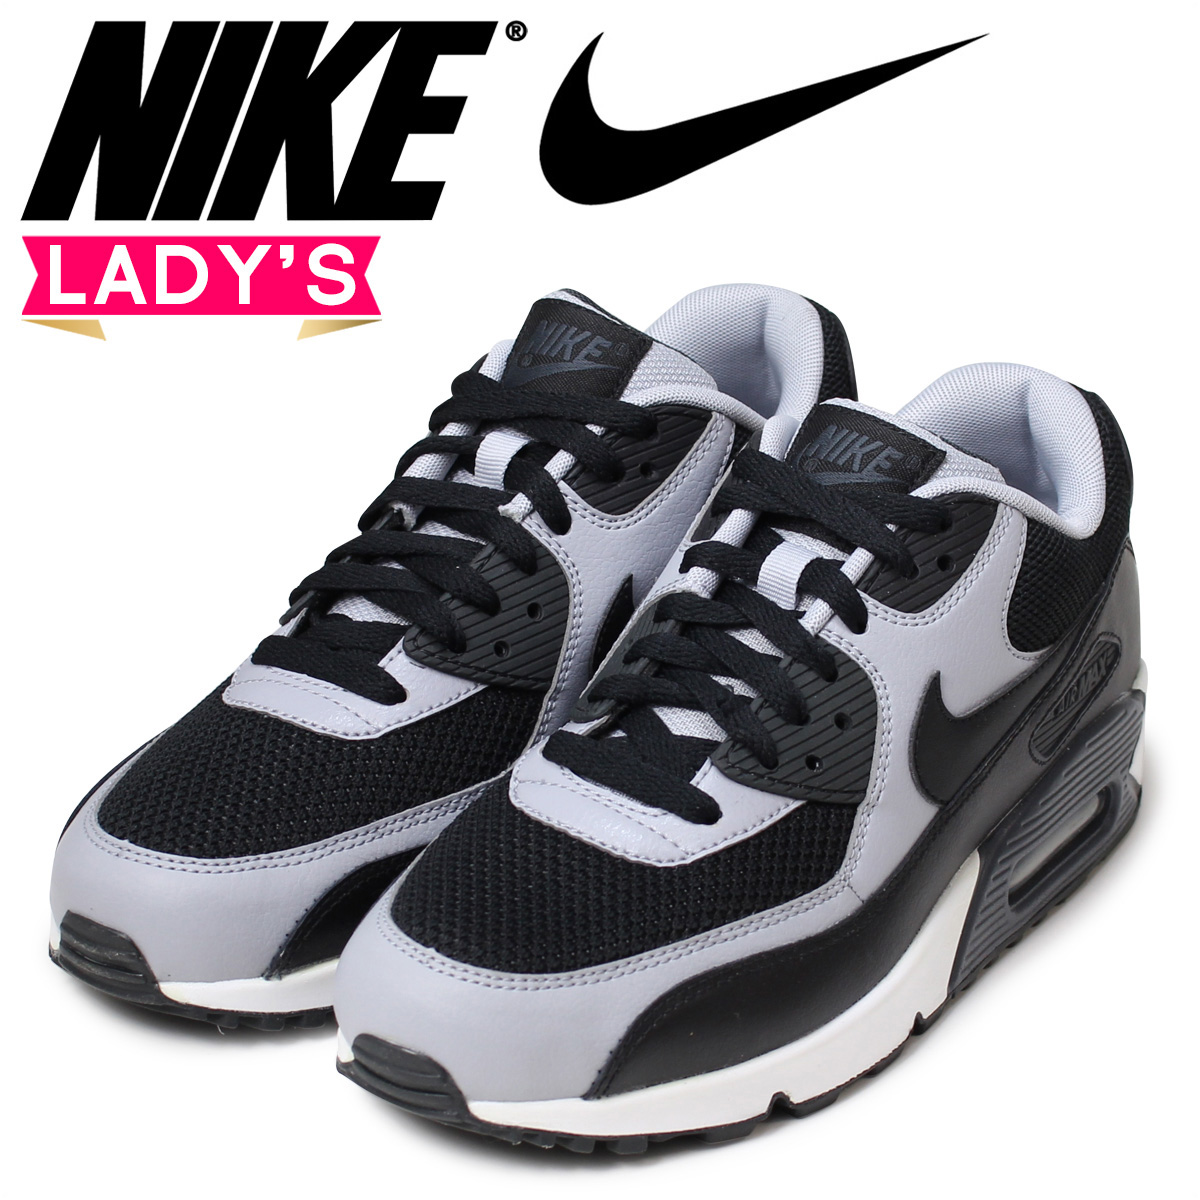 Nike NIKE Air Max Lady's sneakers WMNS AIR MAX ESSENTIAL 537,384 053 shoes black [the 123 additional arrival]